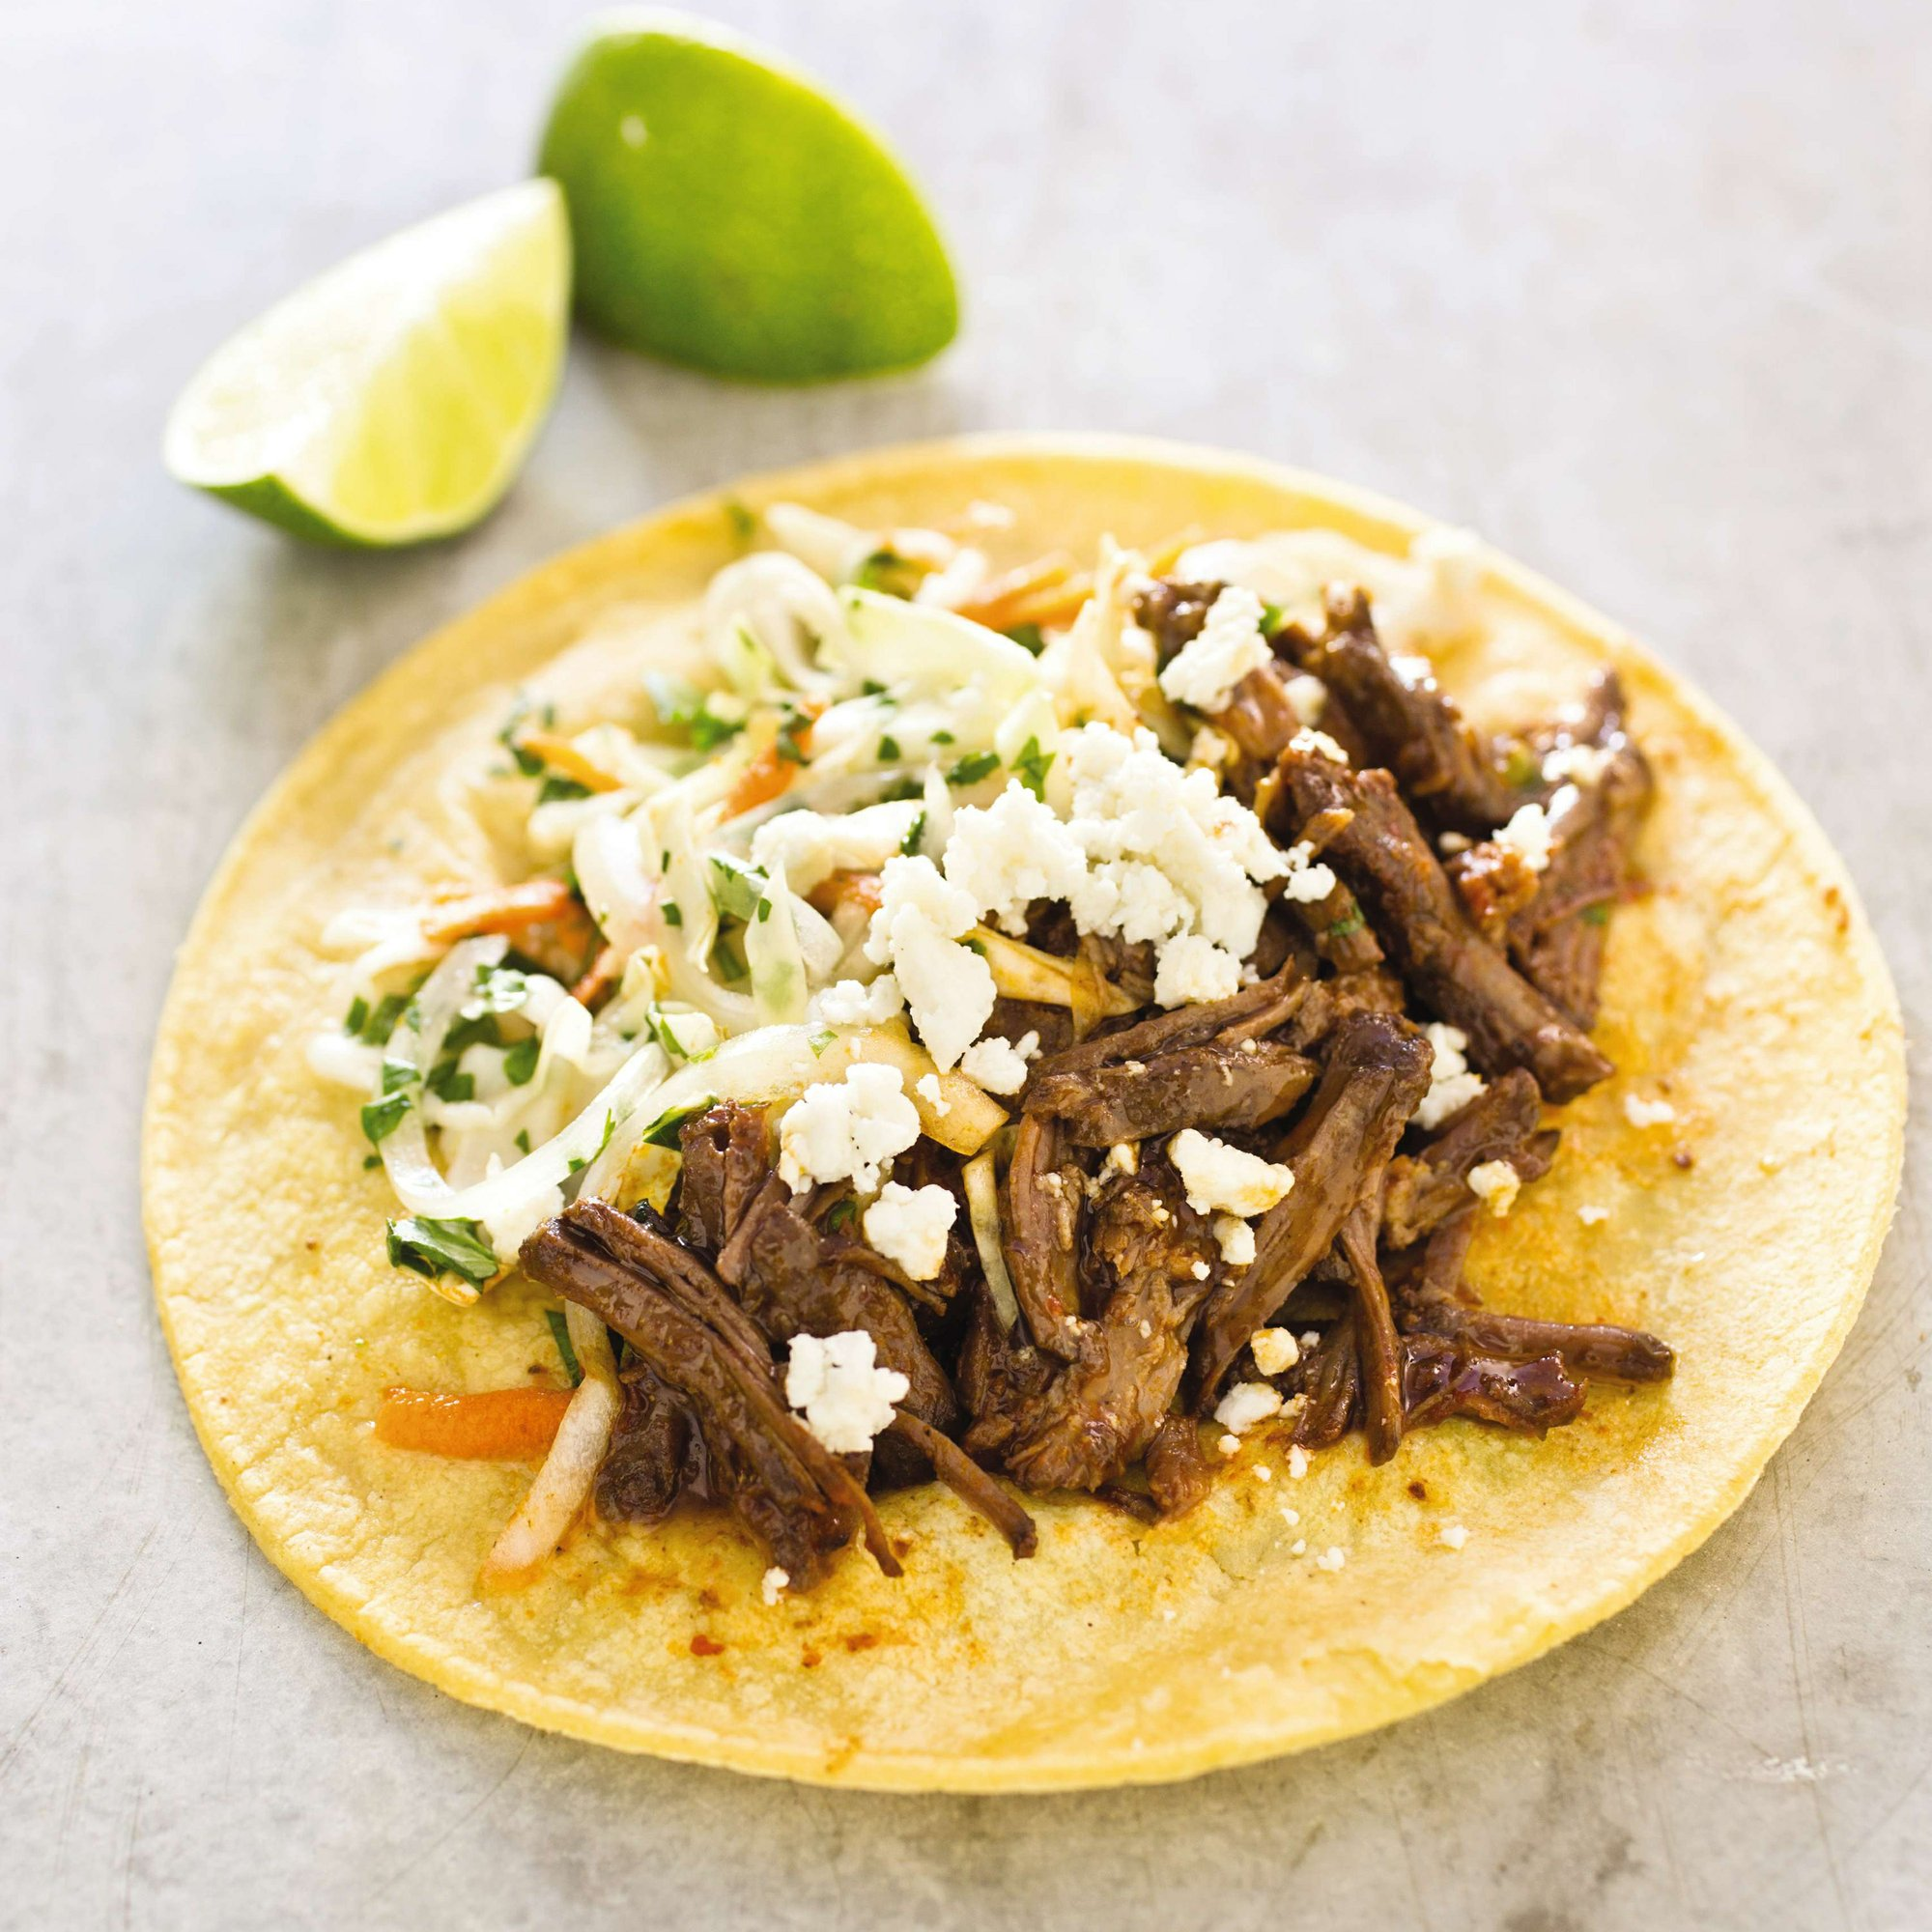 Short ribs in a beer and cider vinegar lead to great tacos